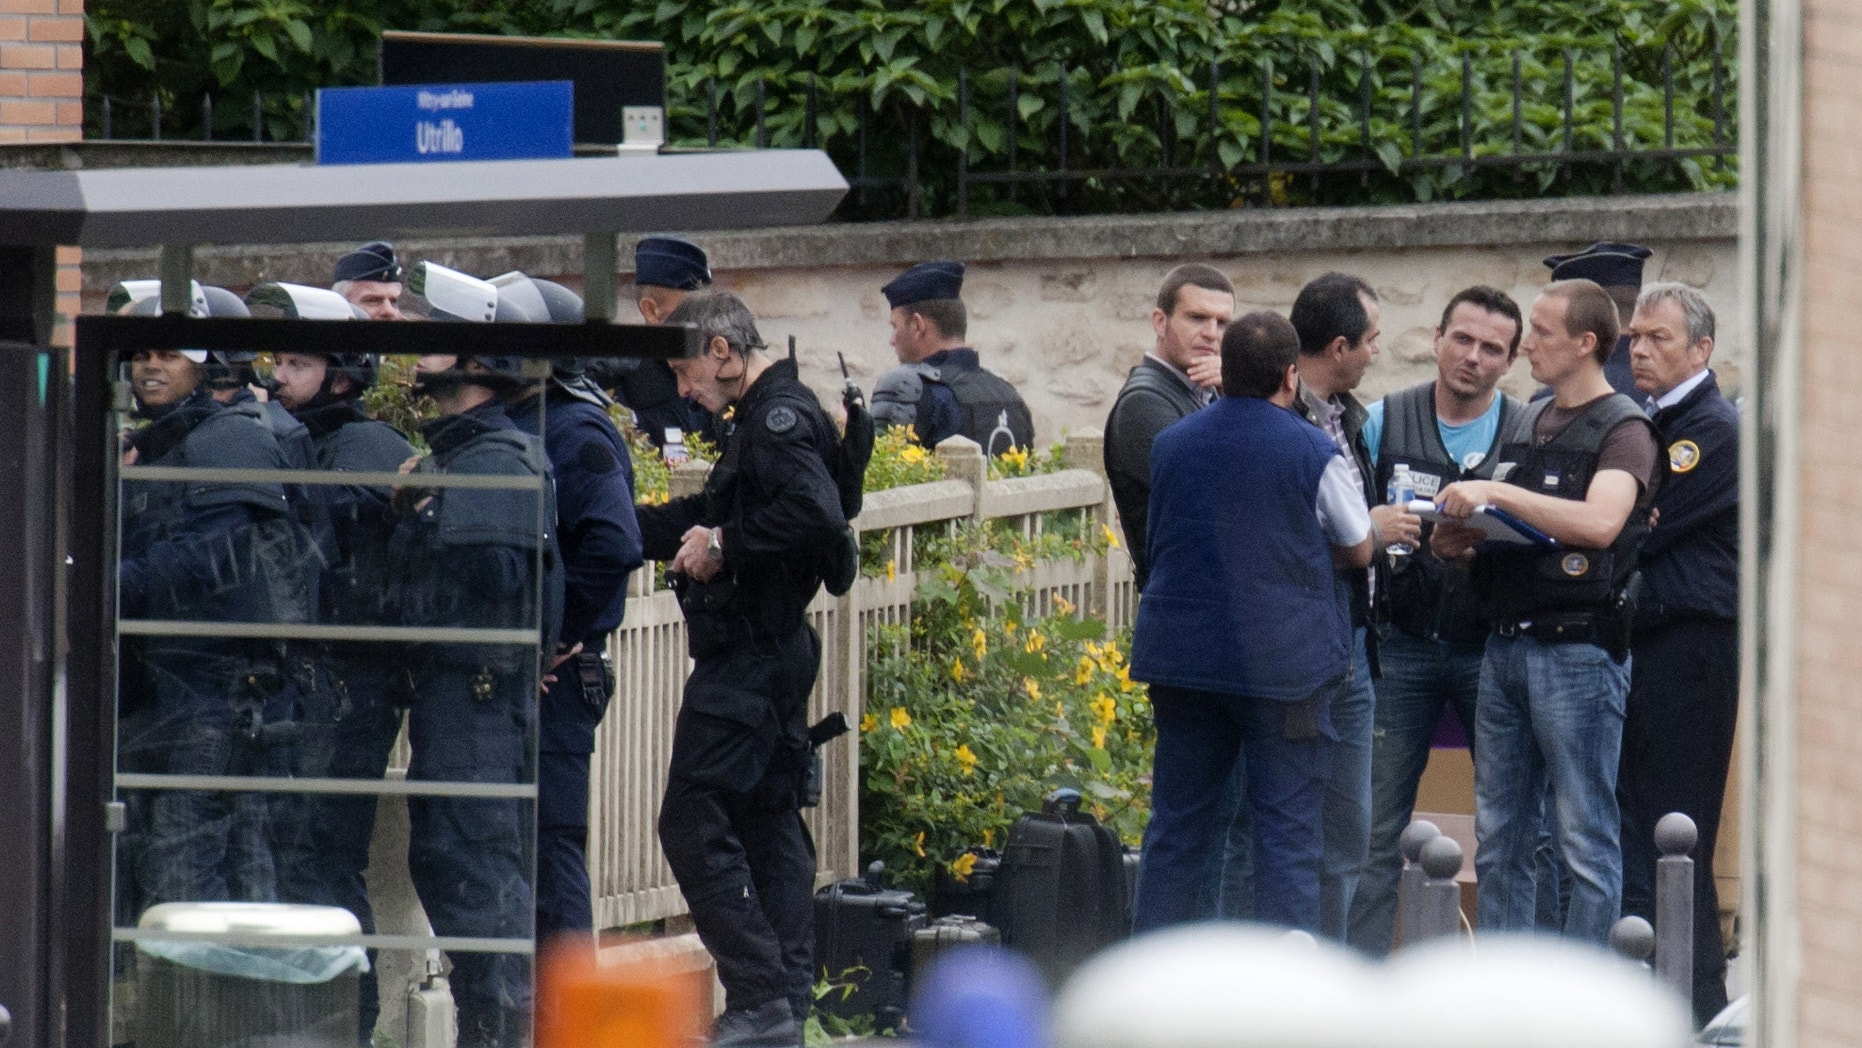 July 10, 2012: Police officers surround a school complex where an armed man took hostages in Vitry sur Seine, south of Paris.